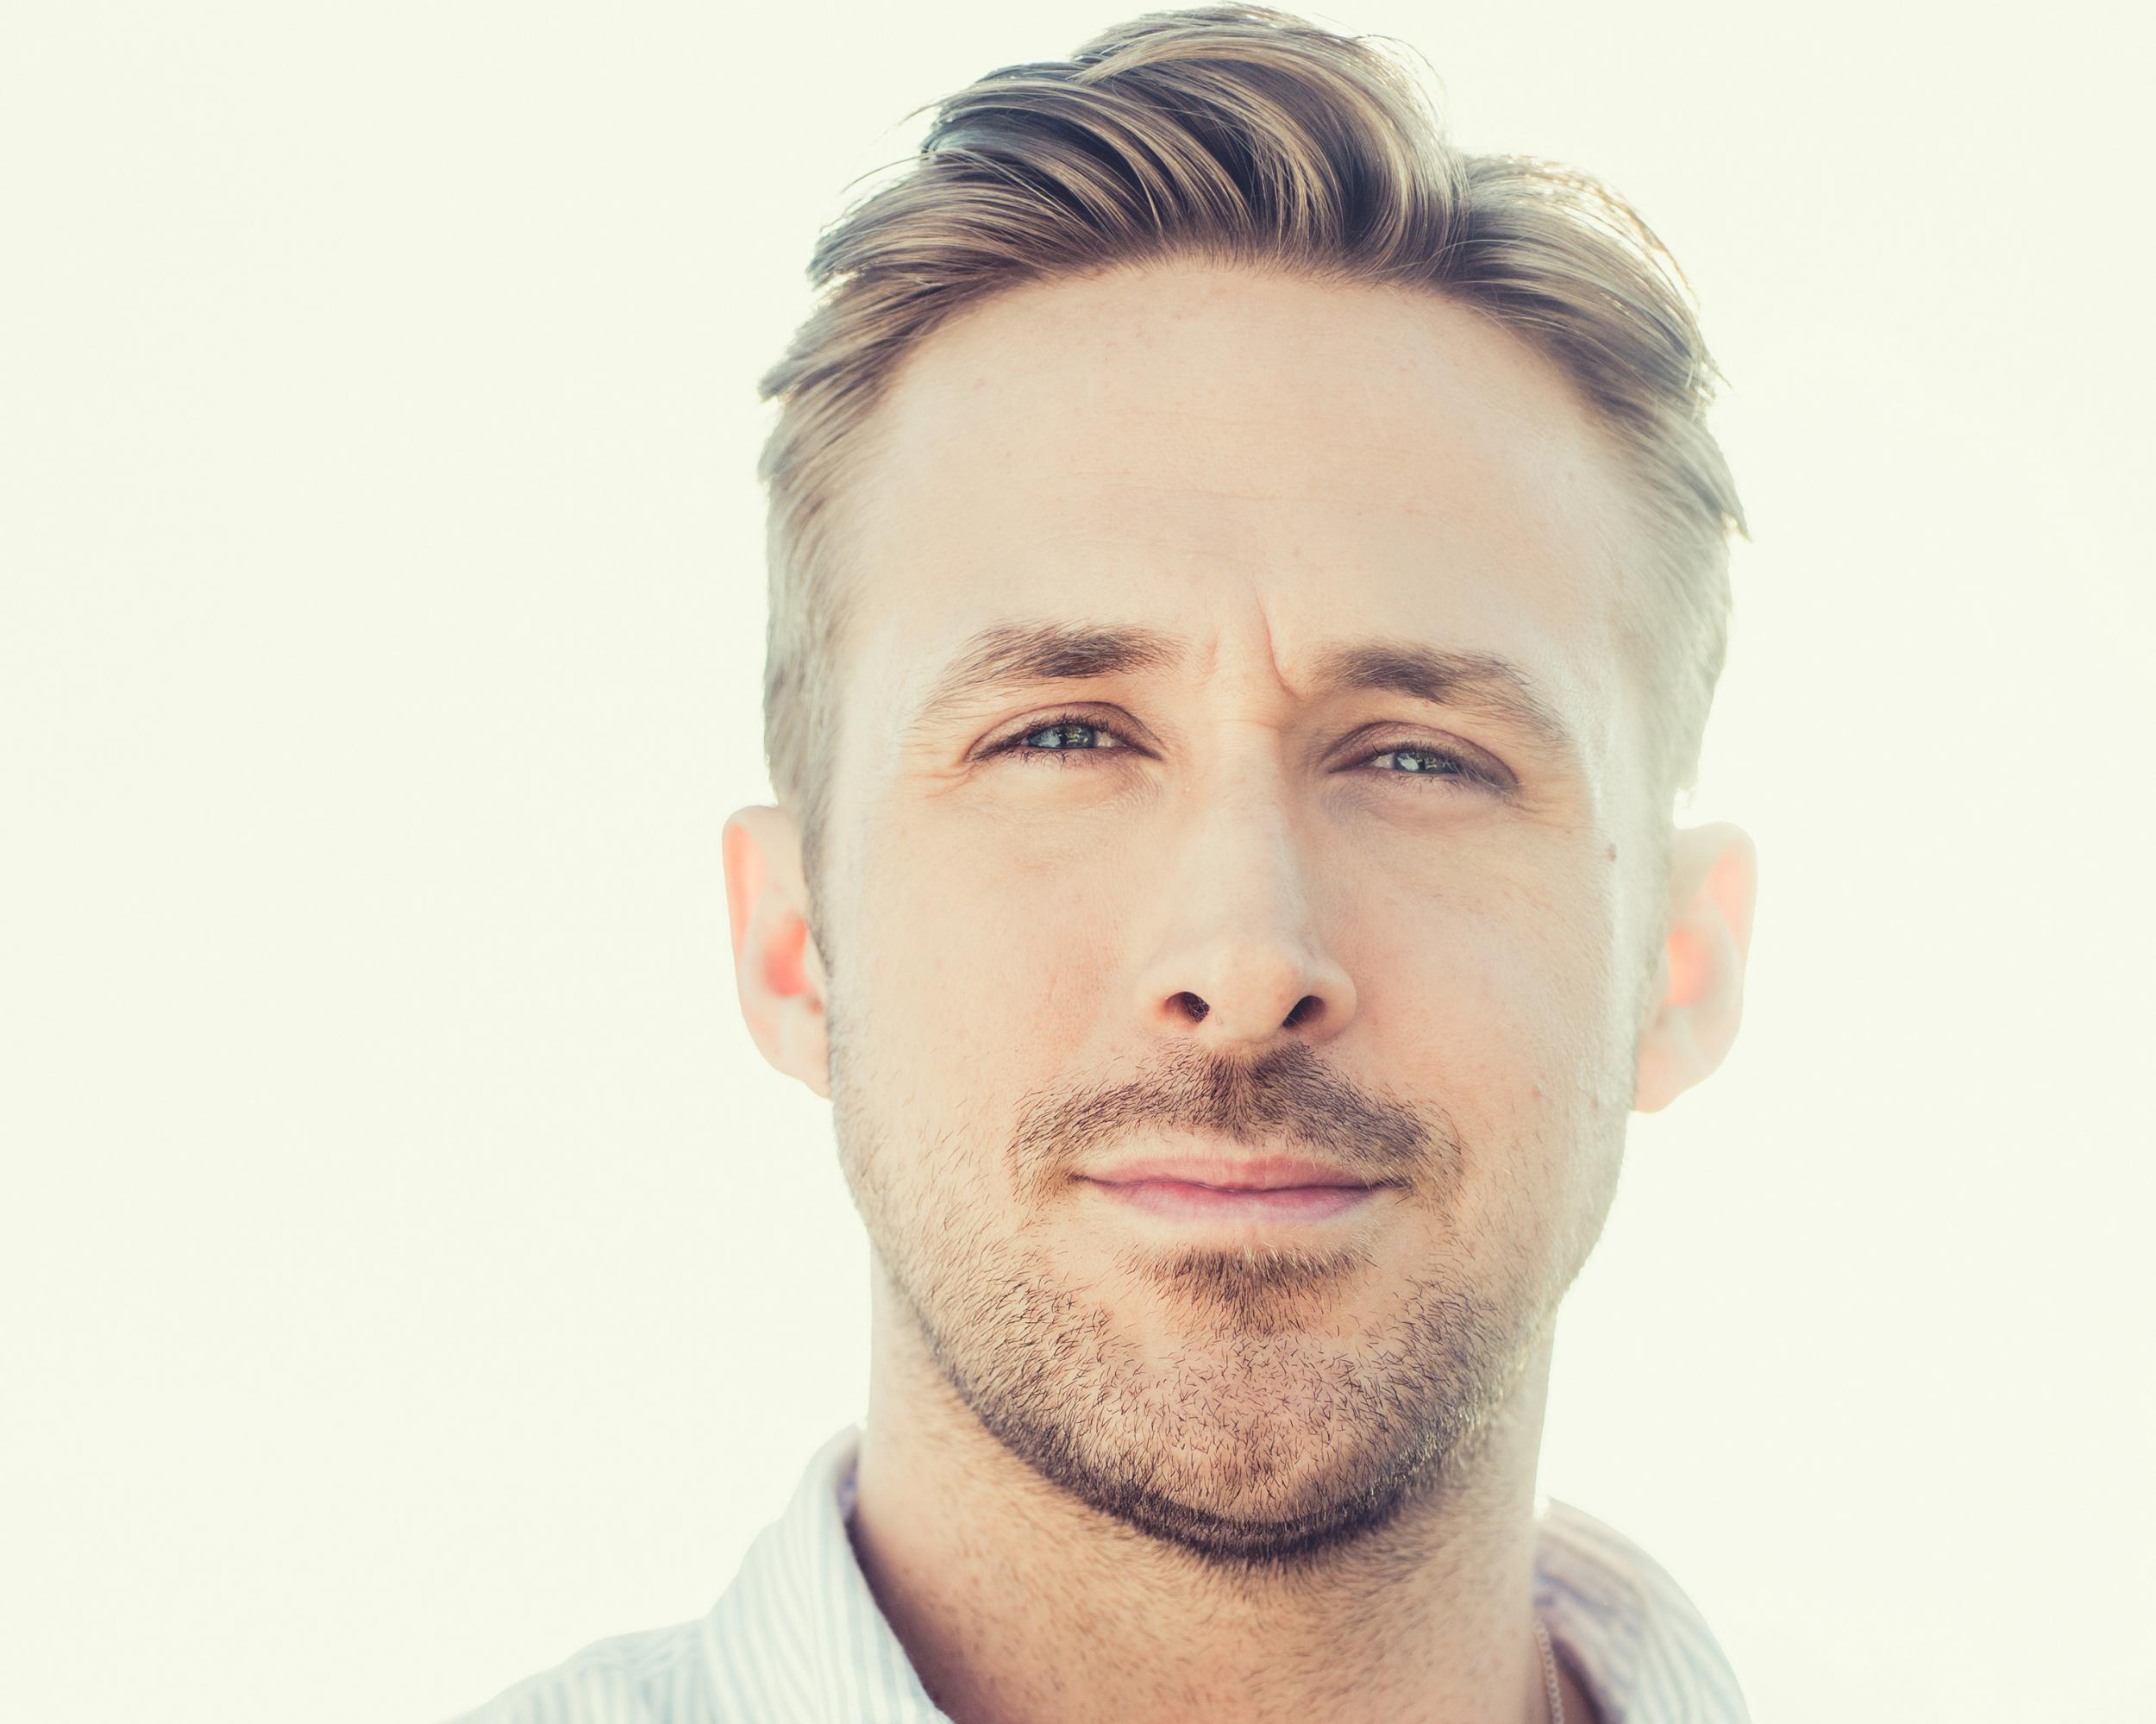 Ryan Gosling Wallpapers Images Photos Pictures Backgrounds 2500x1999